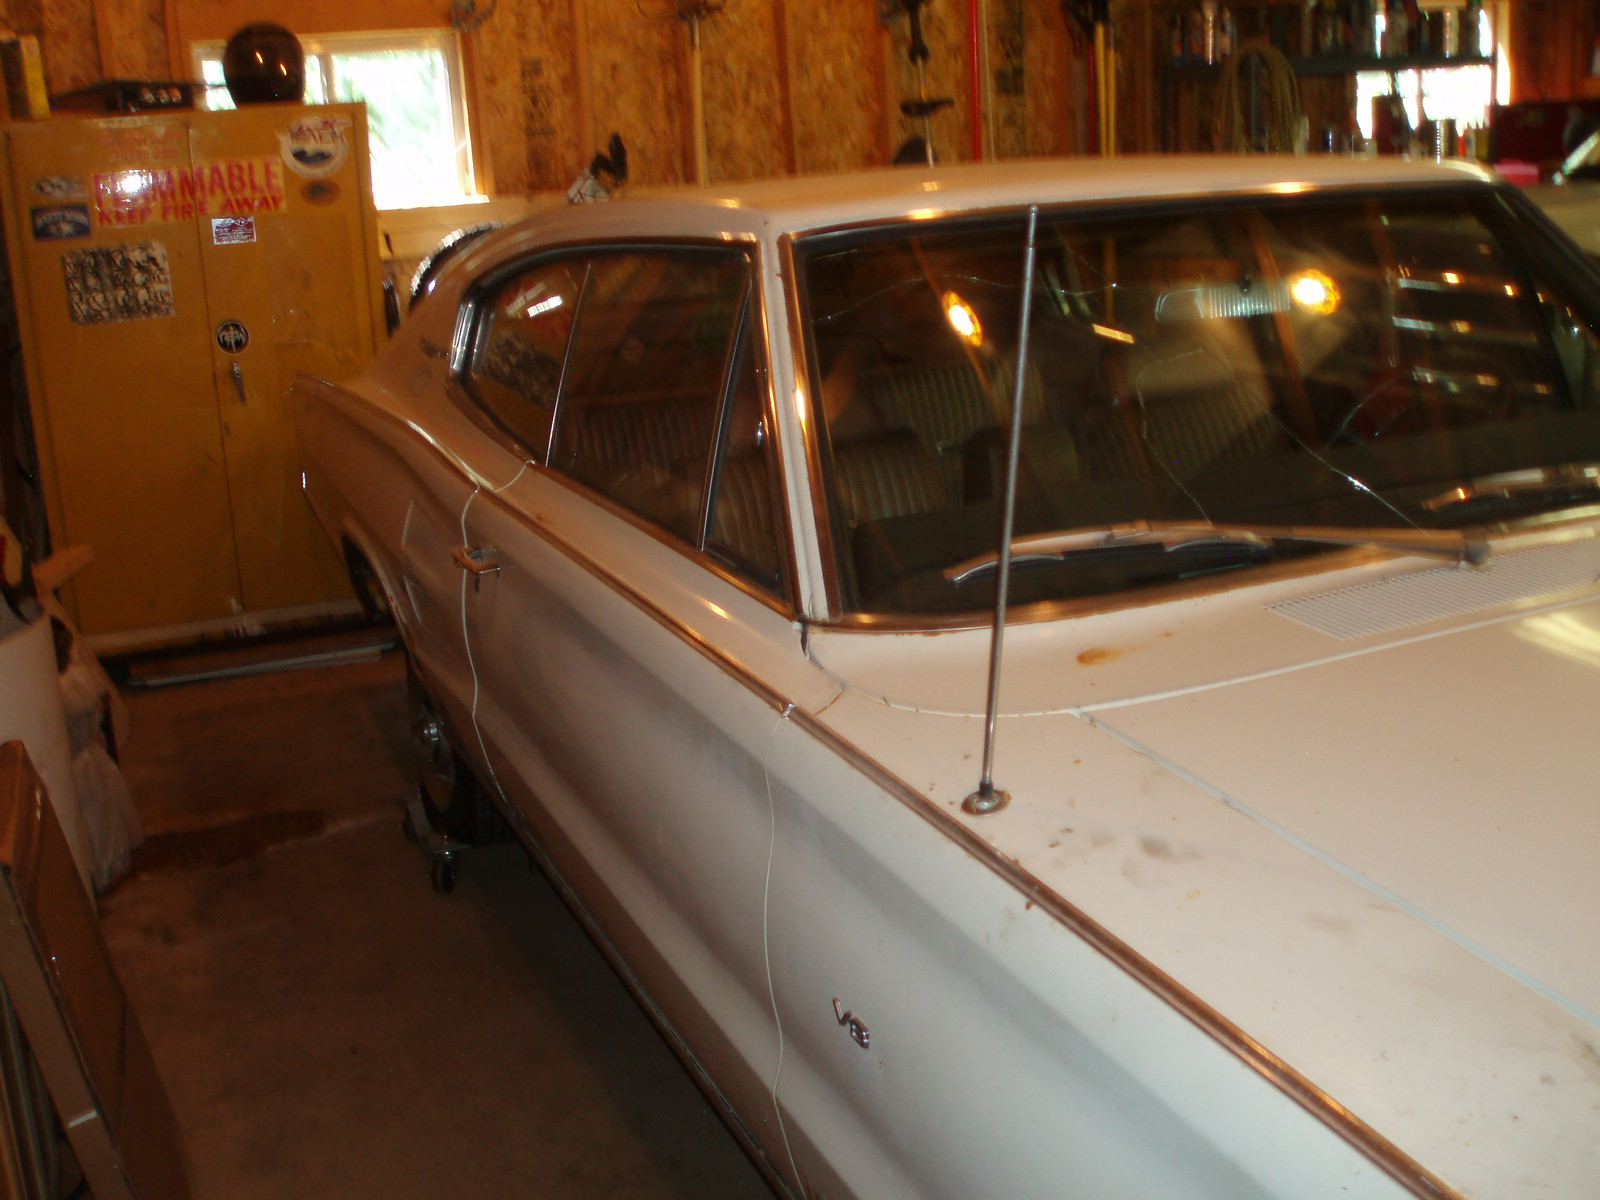 1967 charger 1967 dodge charger for sale - 2010 dodge charger interior trim ...